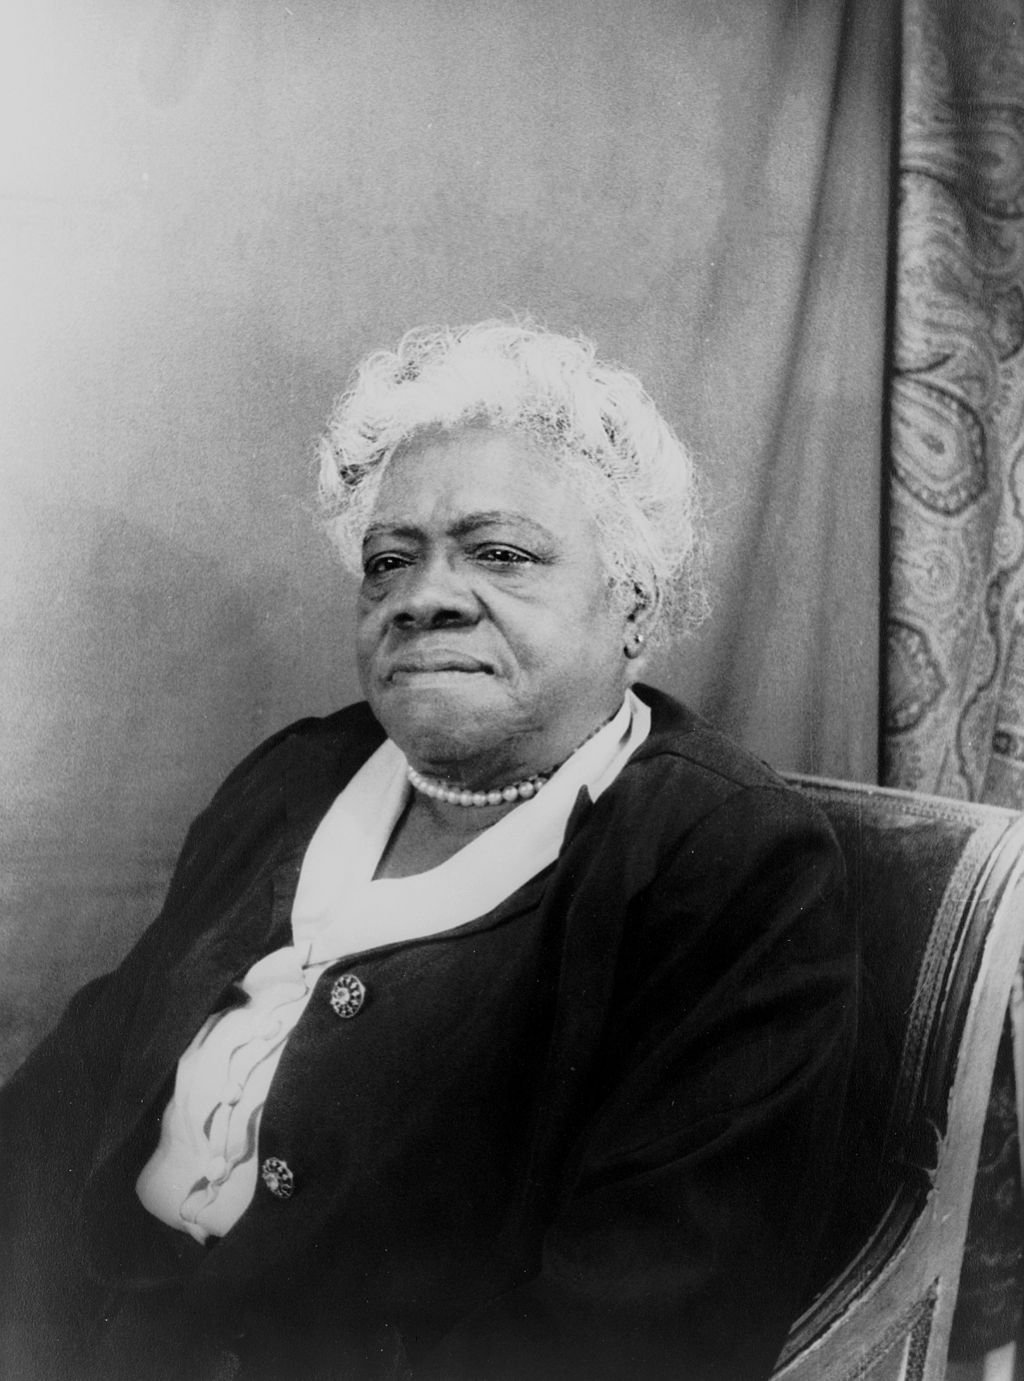 Mary McLeod Bethune, the educator and activist who founded the NCNW in 1935. Photo from 1949, courtesy of the Library of Congress.